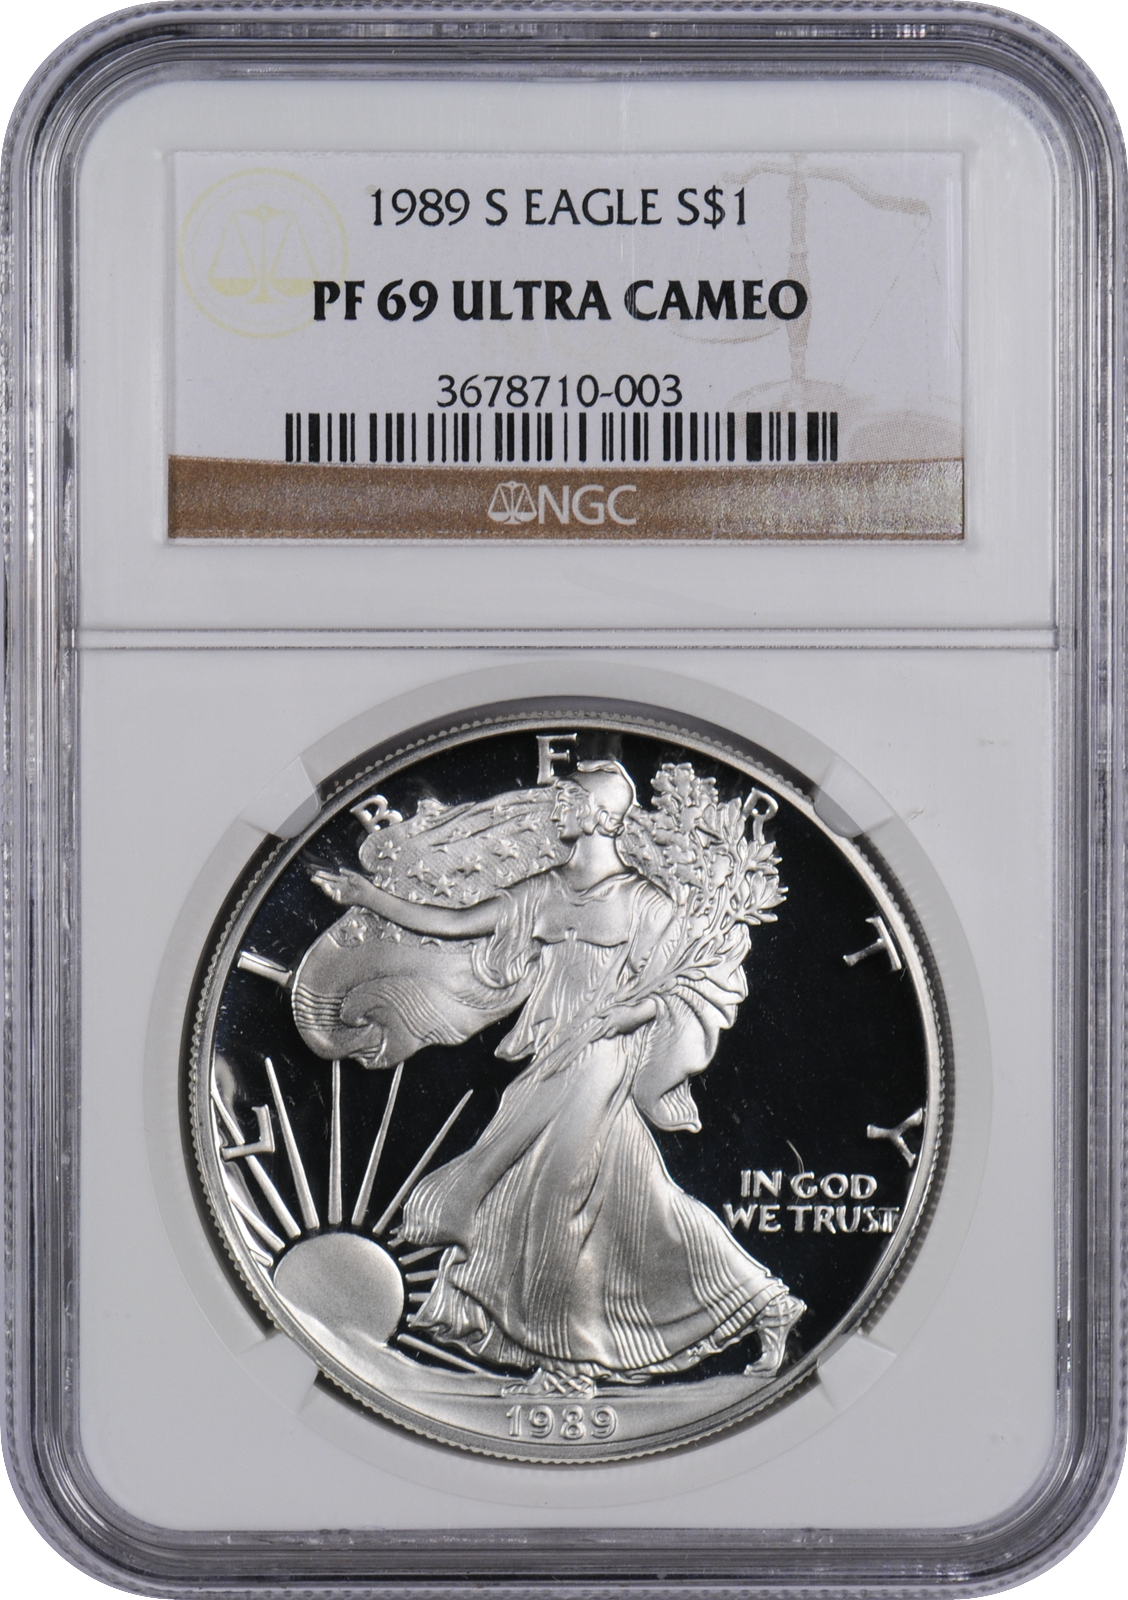 This 1989 S Silver Eagle Pf69 Uc Is A Popular Coin For Investors And Collectors Alike This Coin Has A Face V Silver Dollar Silver Bullion Coins Silver Eagles